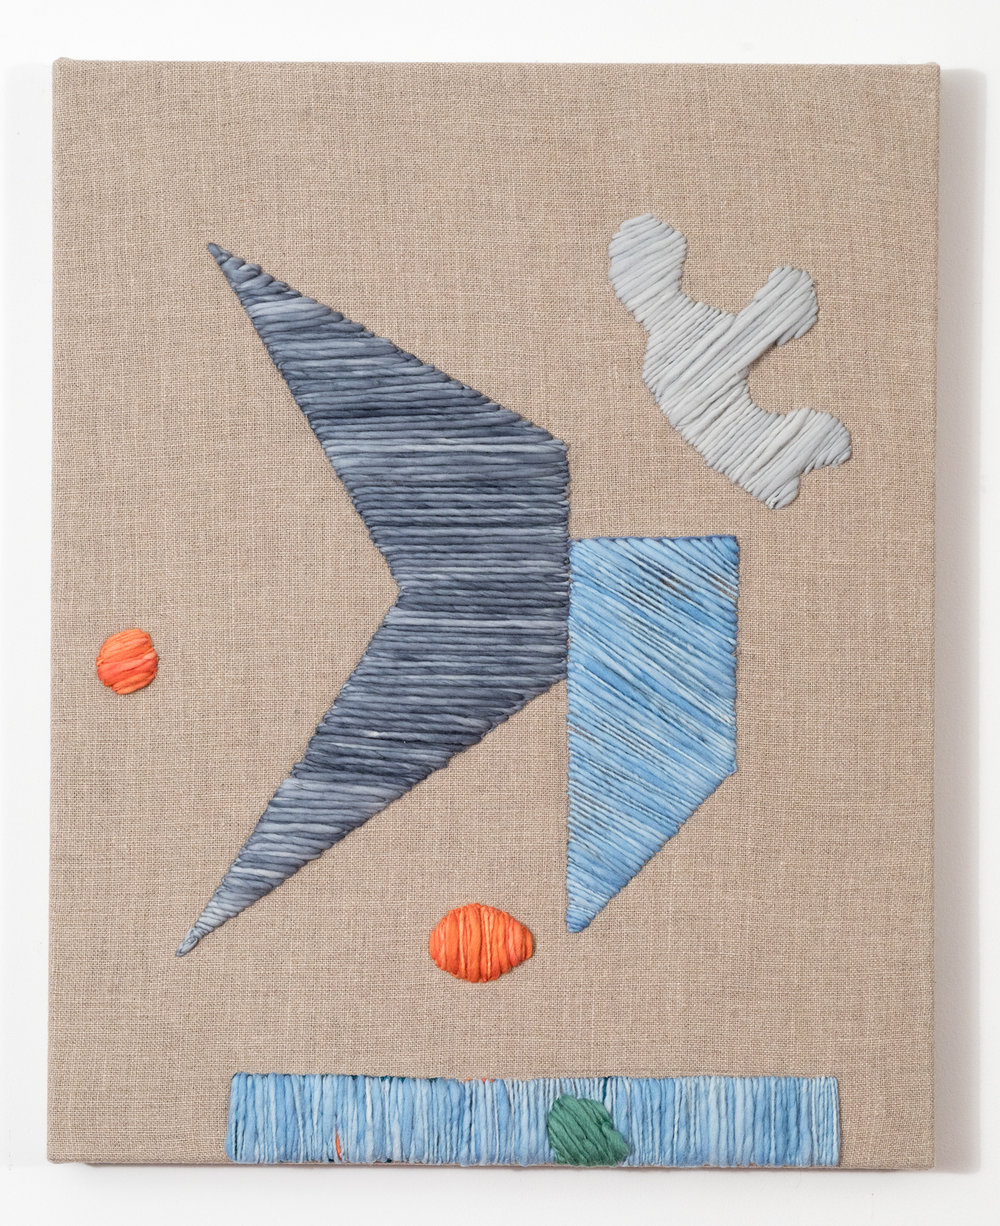 System 9 2017 Wool and Linen on Wood Stretcher 30 x 24 inches